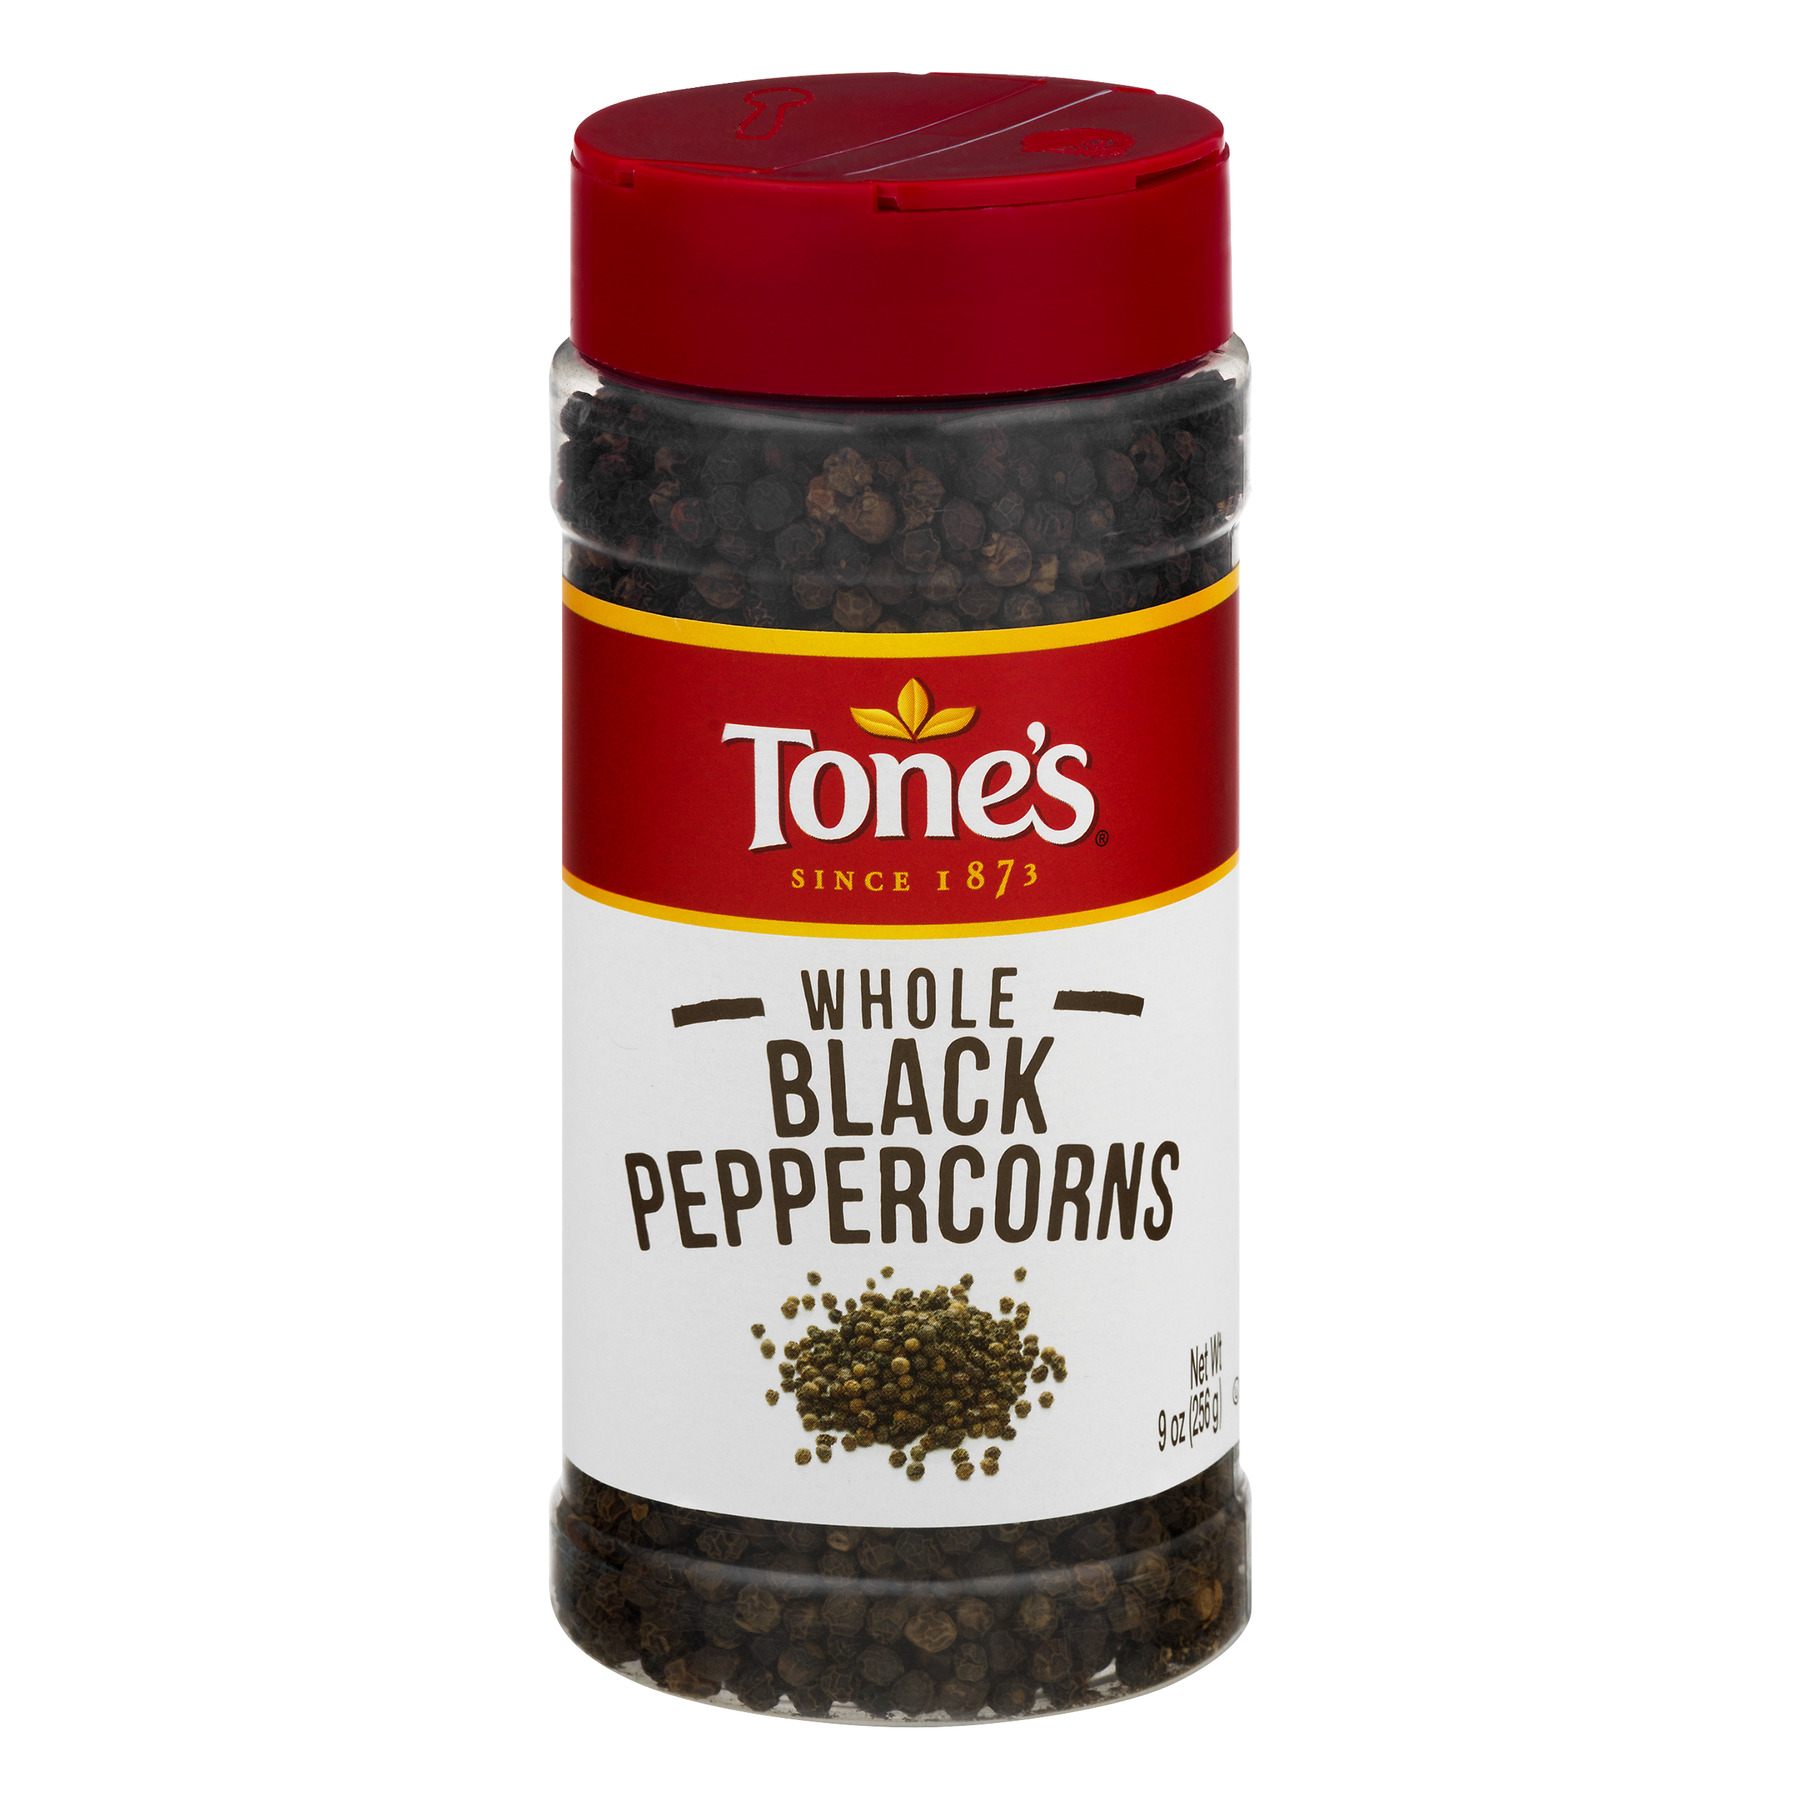 Tone's Black Peppercorns Whole, 9 oz $.78/oz